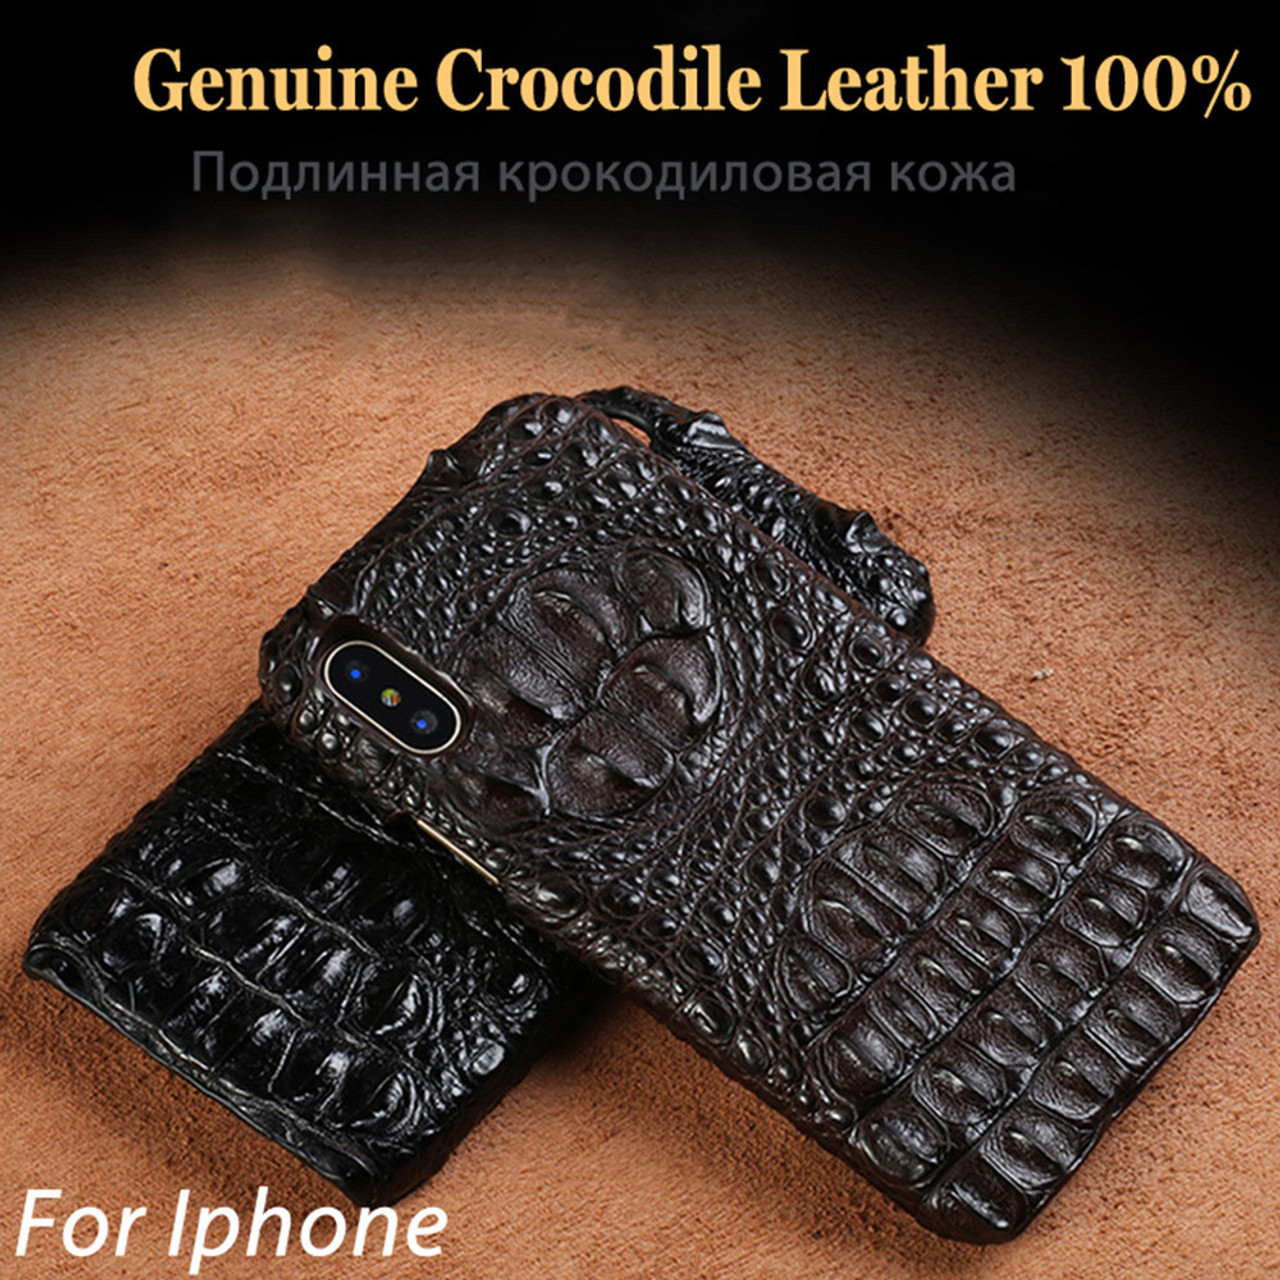 new concept 06d36 be291 Genuine Real Crocodile Leather Phone Case for iPhone XS Max 3D Alligator  Skin Back Cover For iPhone XR Case iPhone XS iPhone X